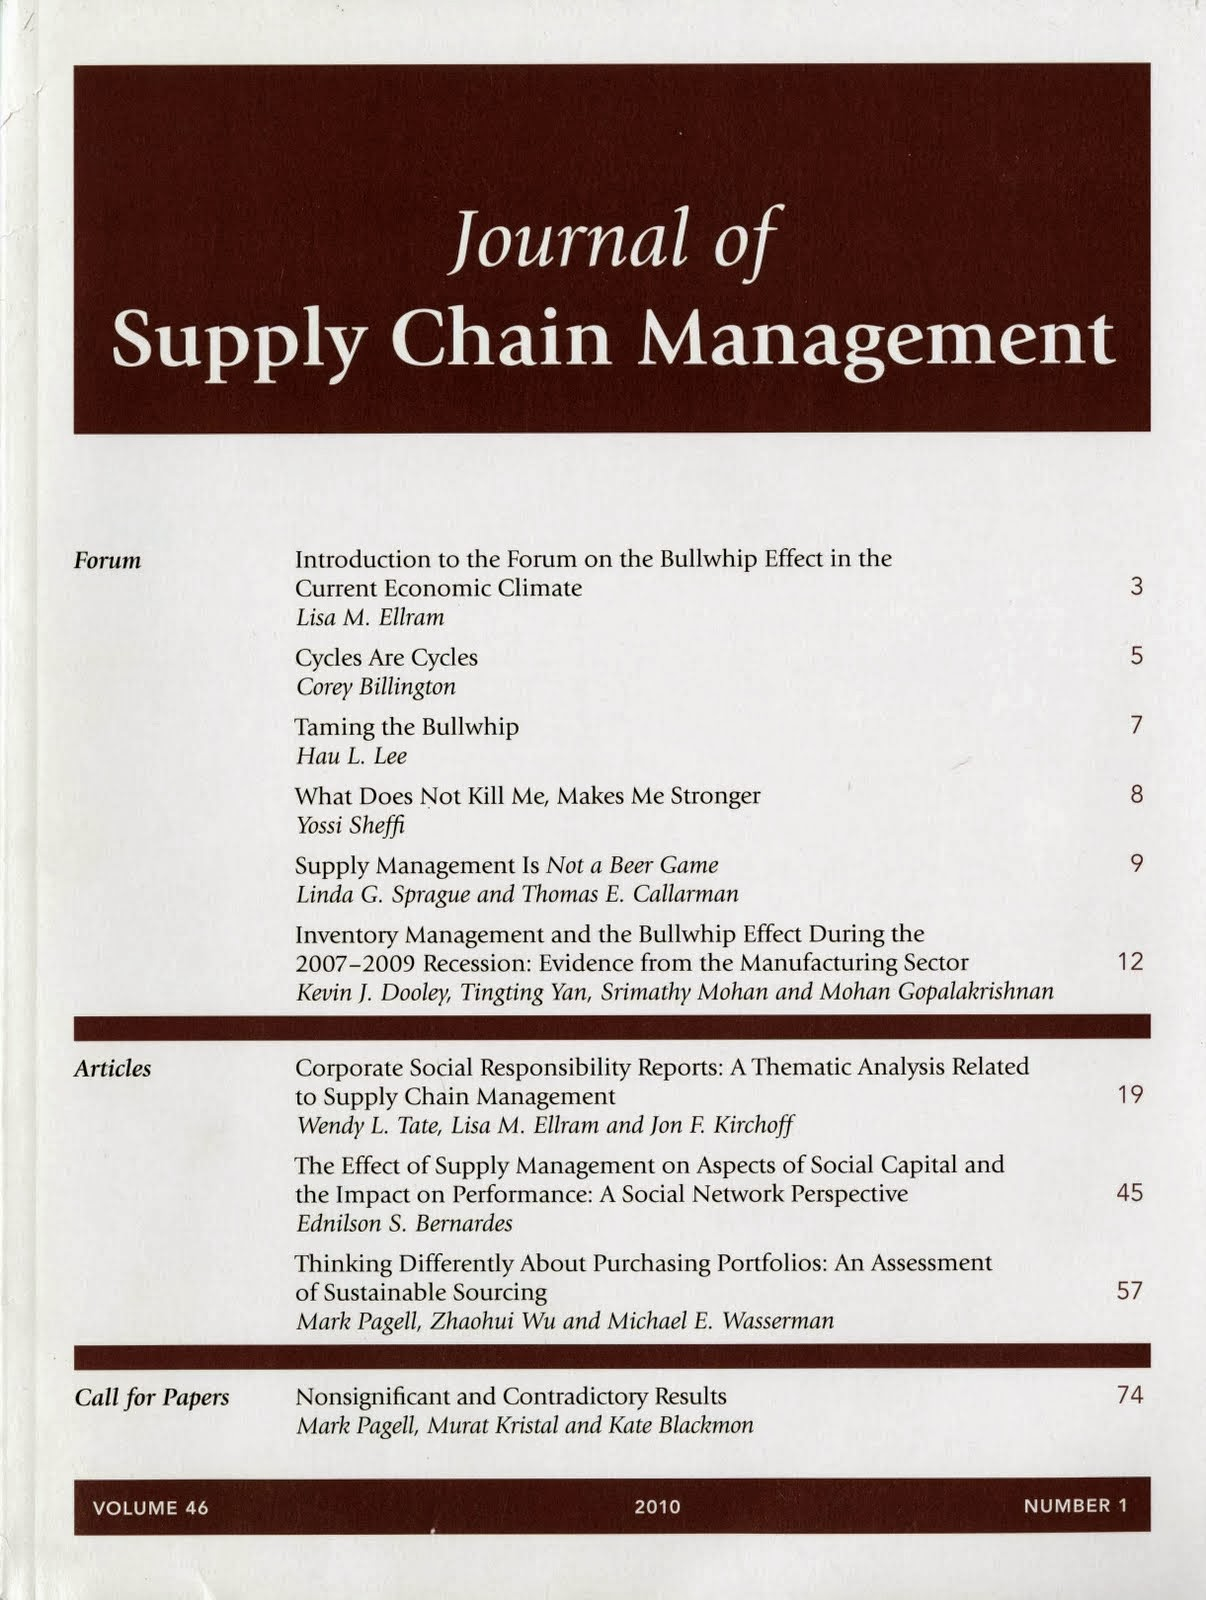 reflective journal supply chain management The growing scale and scope of the supply chain requires a greater understanding of the broader supply chain skills picture this study aims to assess the supply chain skills needs within the context of a uk-based higher education institution involving graduates, academics and employers to appreciate the graduate skills.